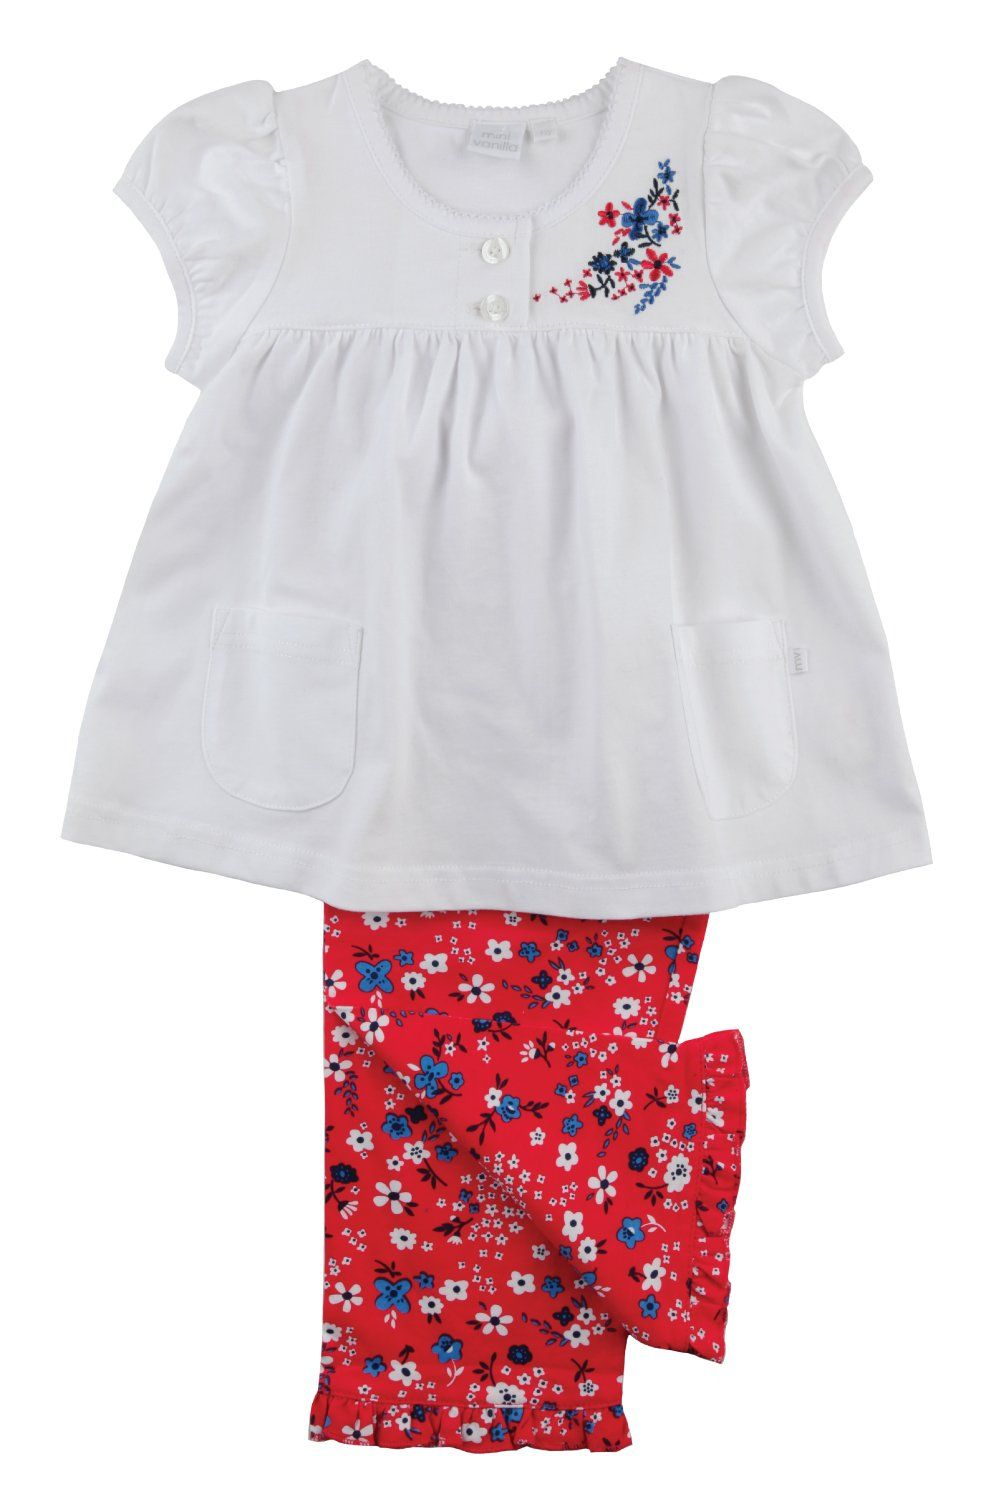 Pretty flowered Pyjamas for girls